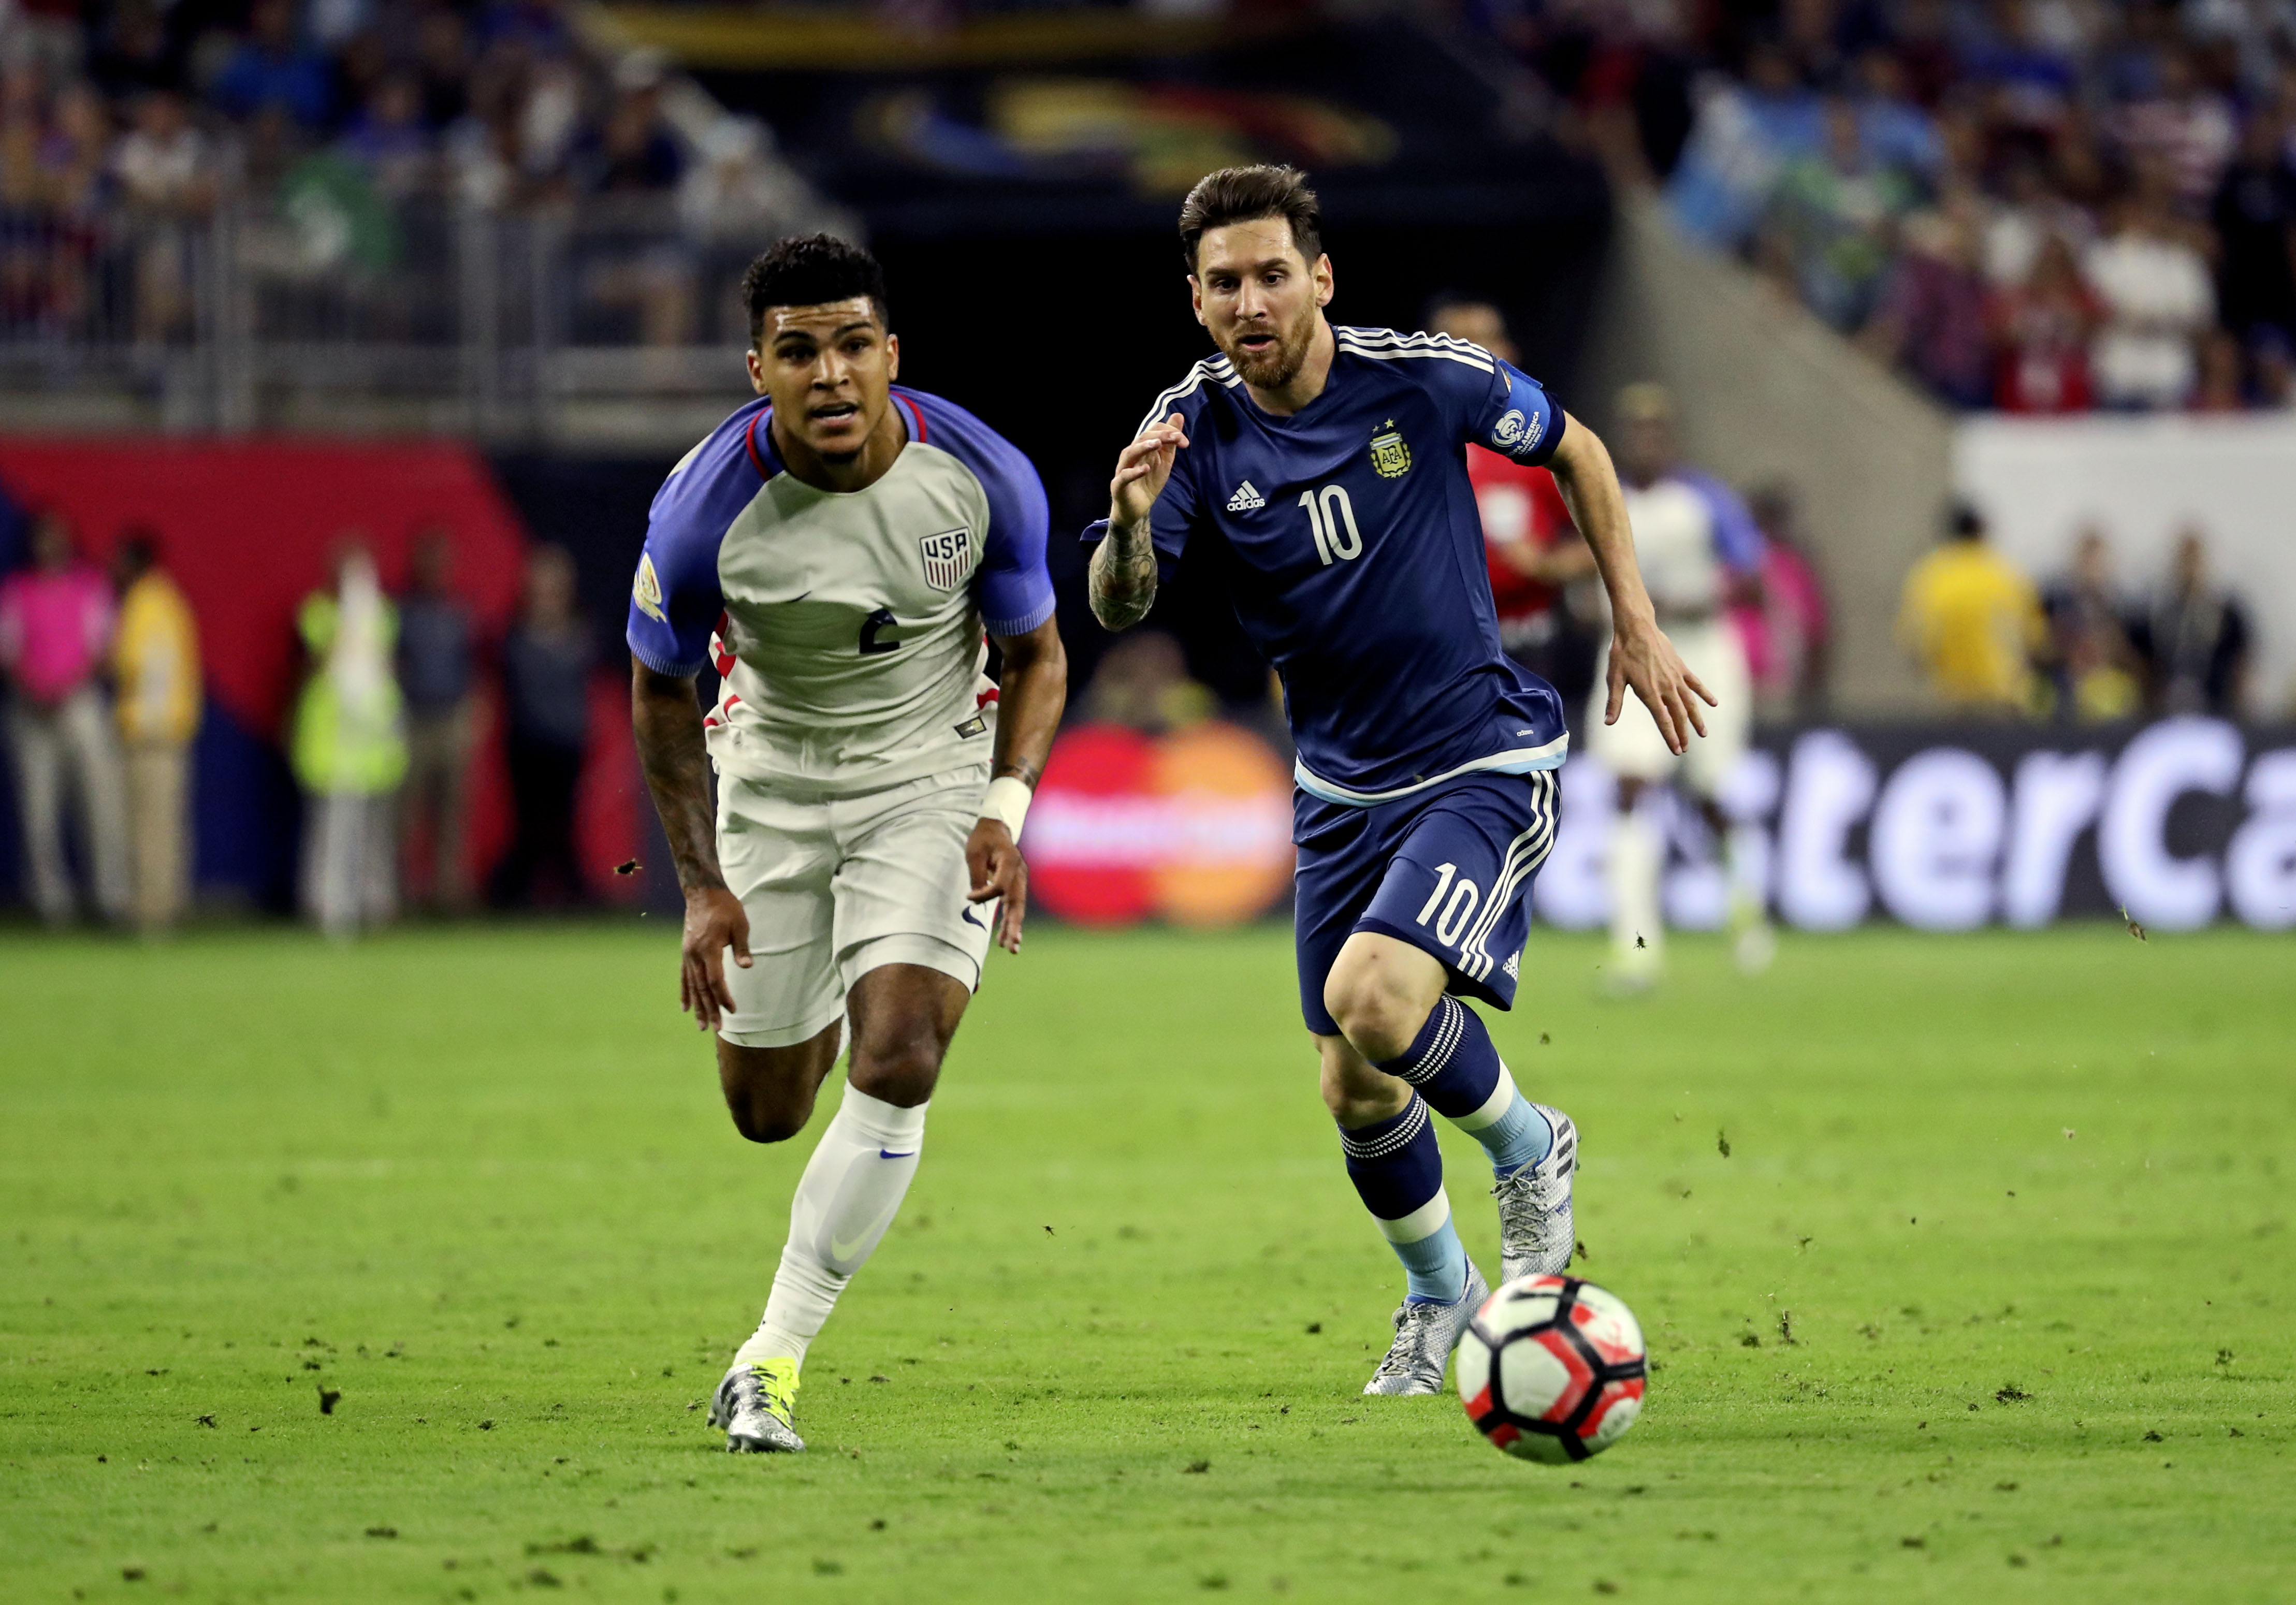 Argentina Vs Chile Copa America 2016 Live Stream Time Tv Schedule And How To Watch Online